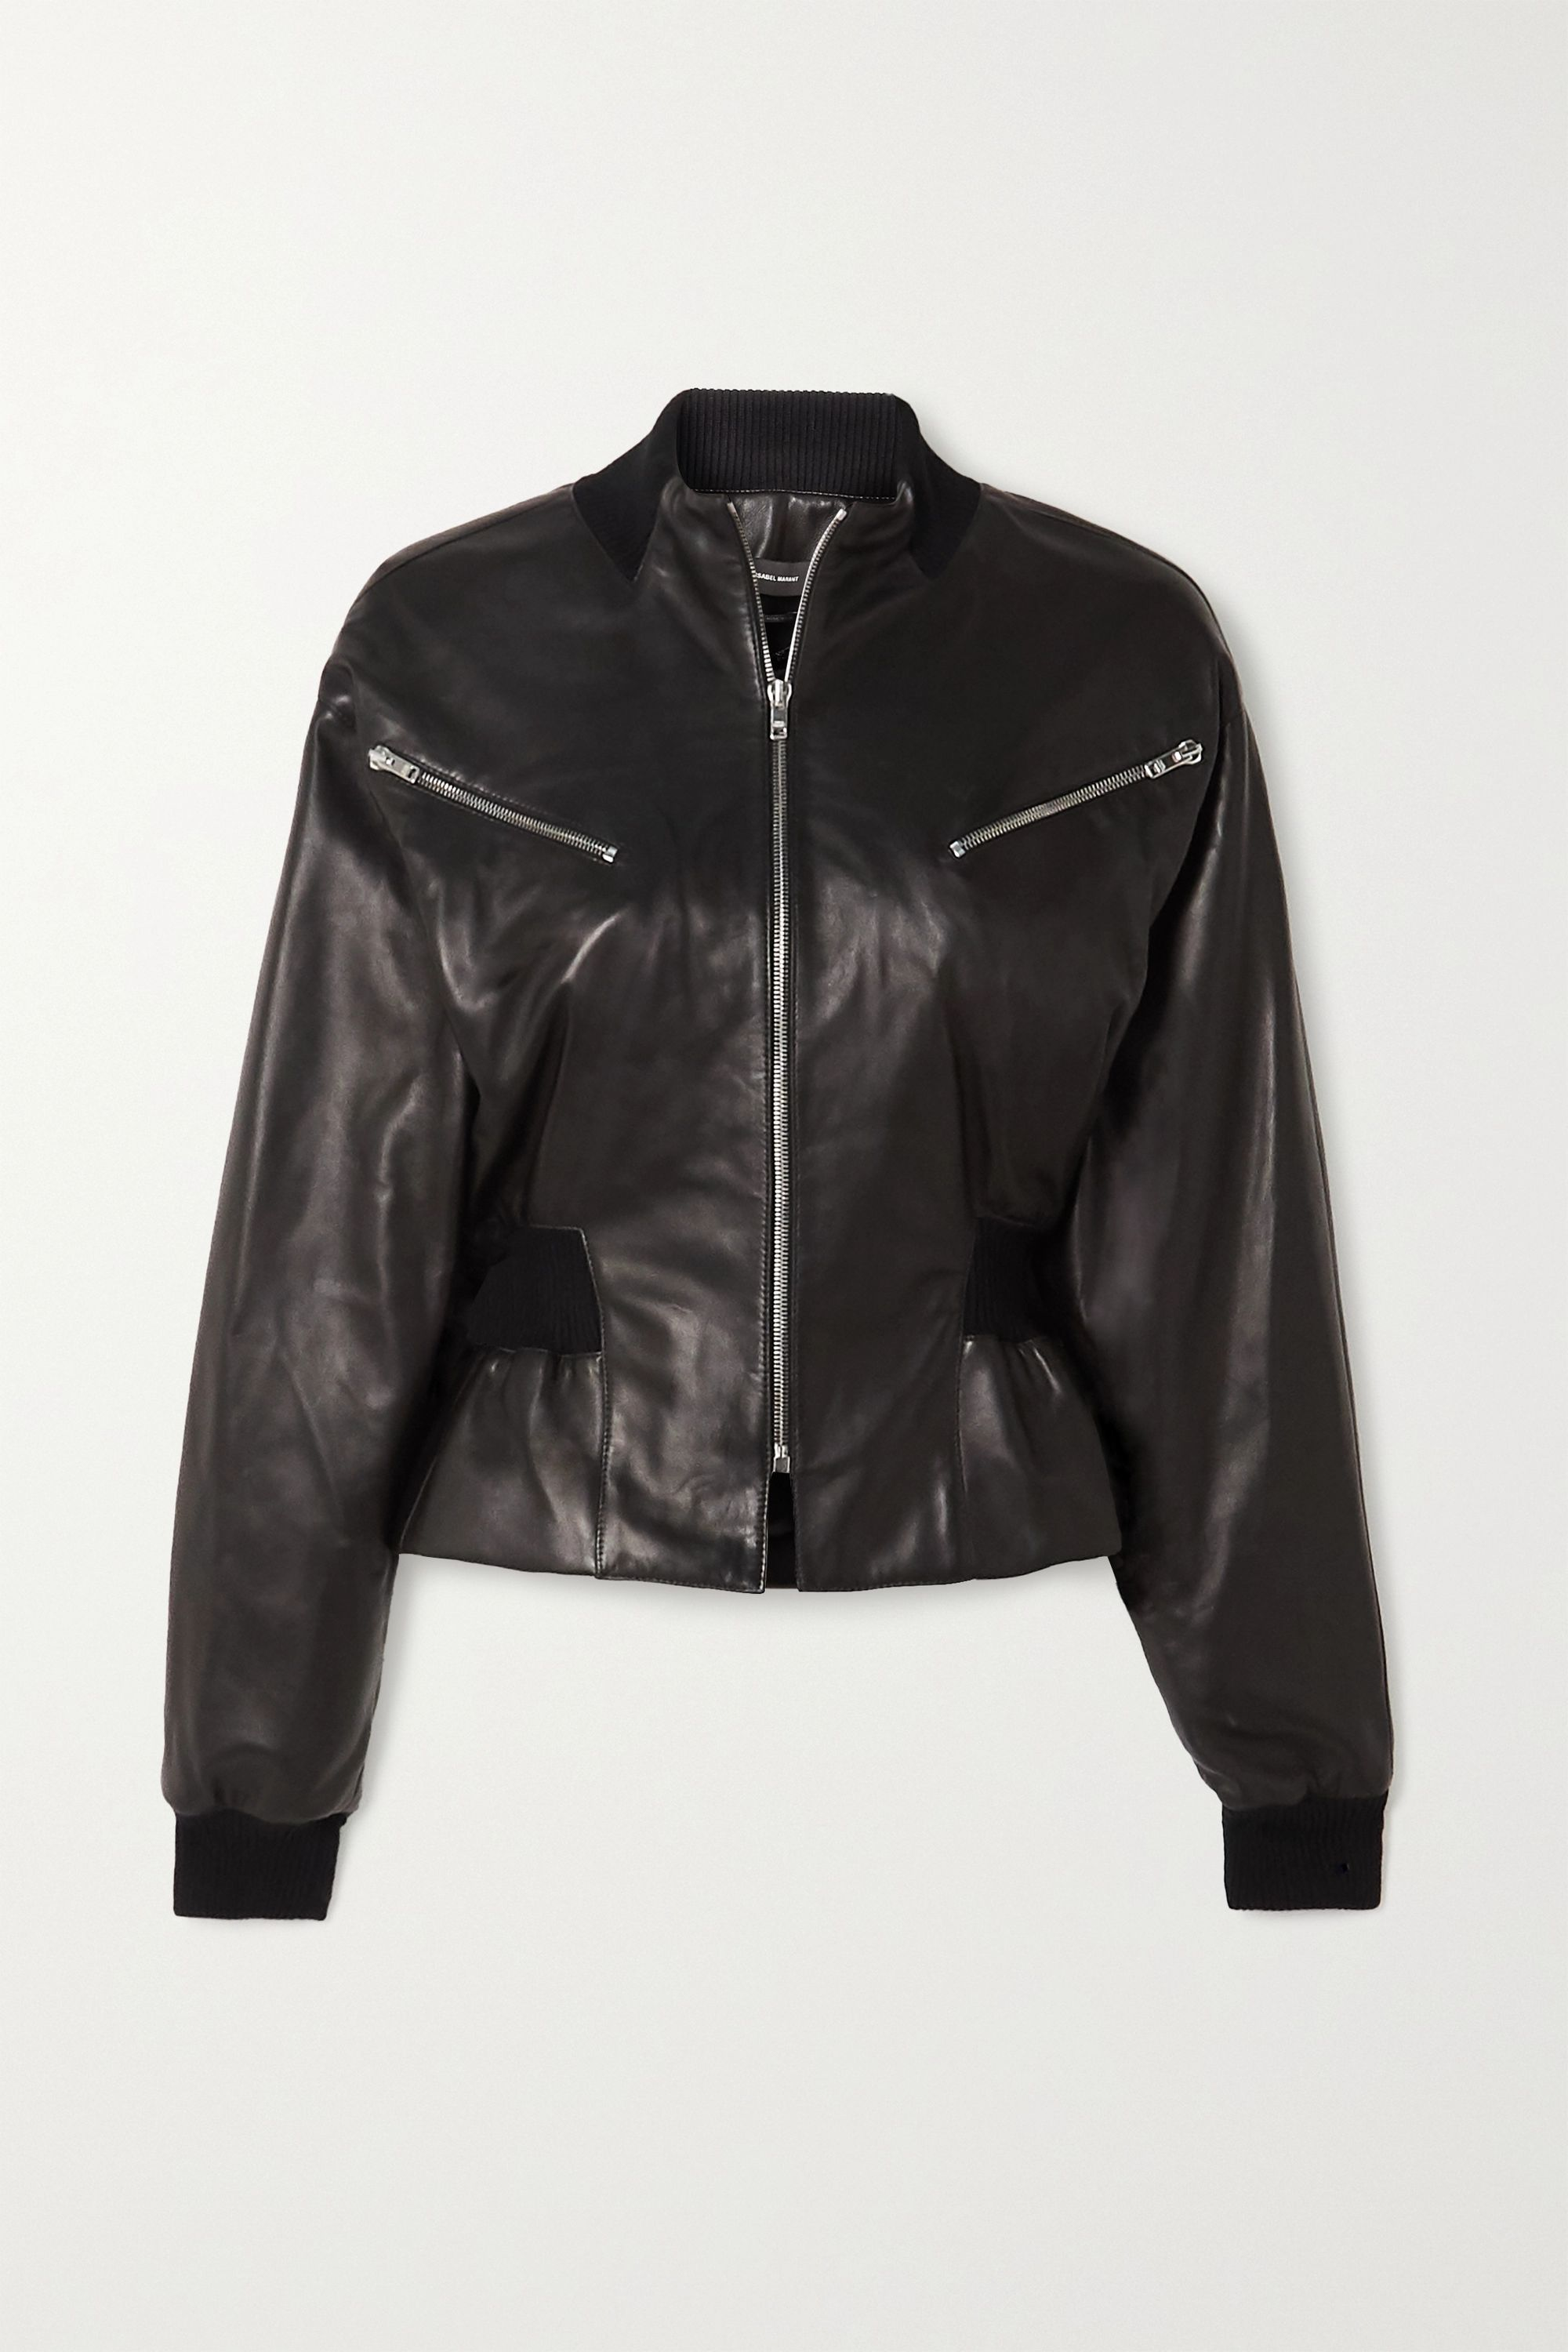 Isabel Marant Xabia leather jacket